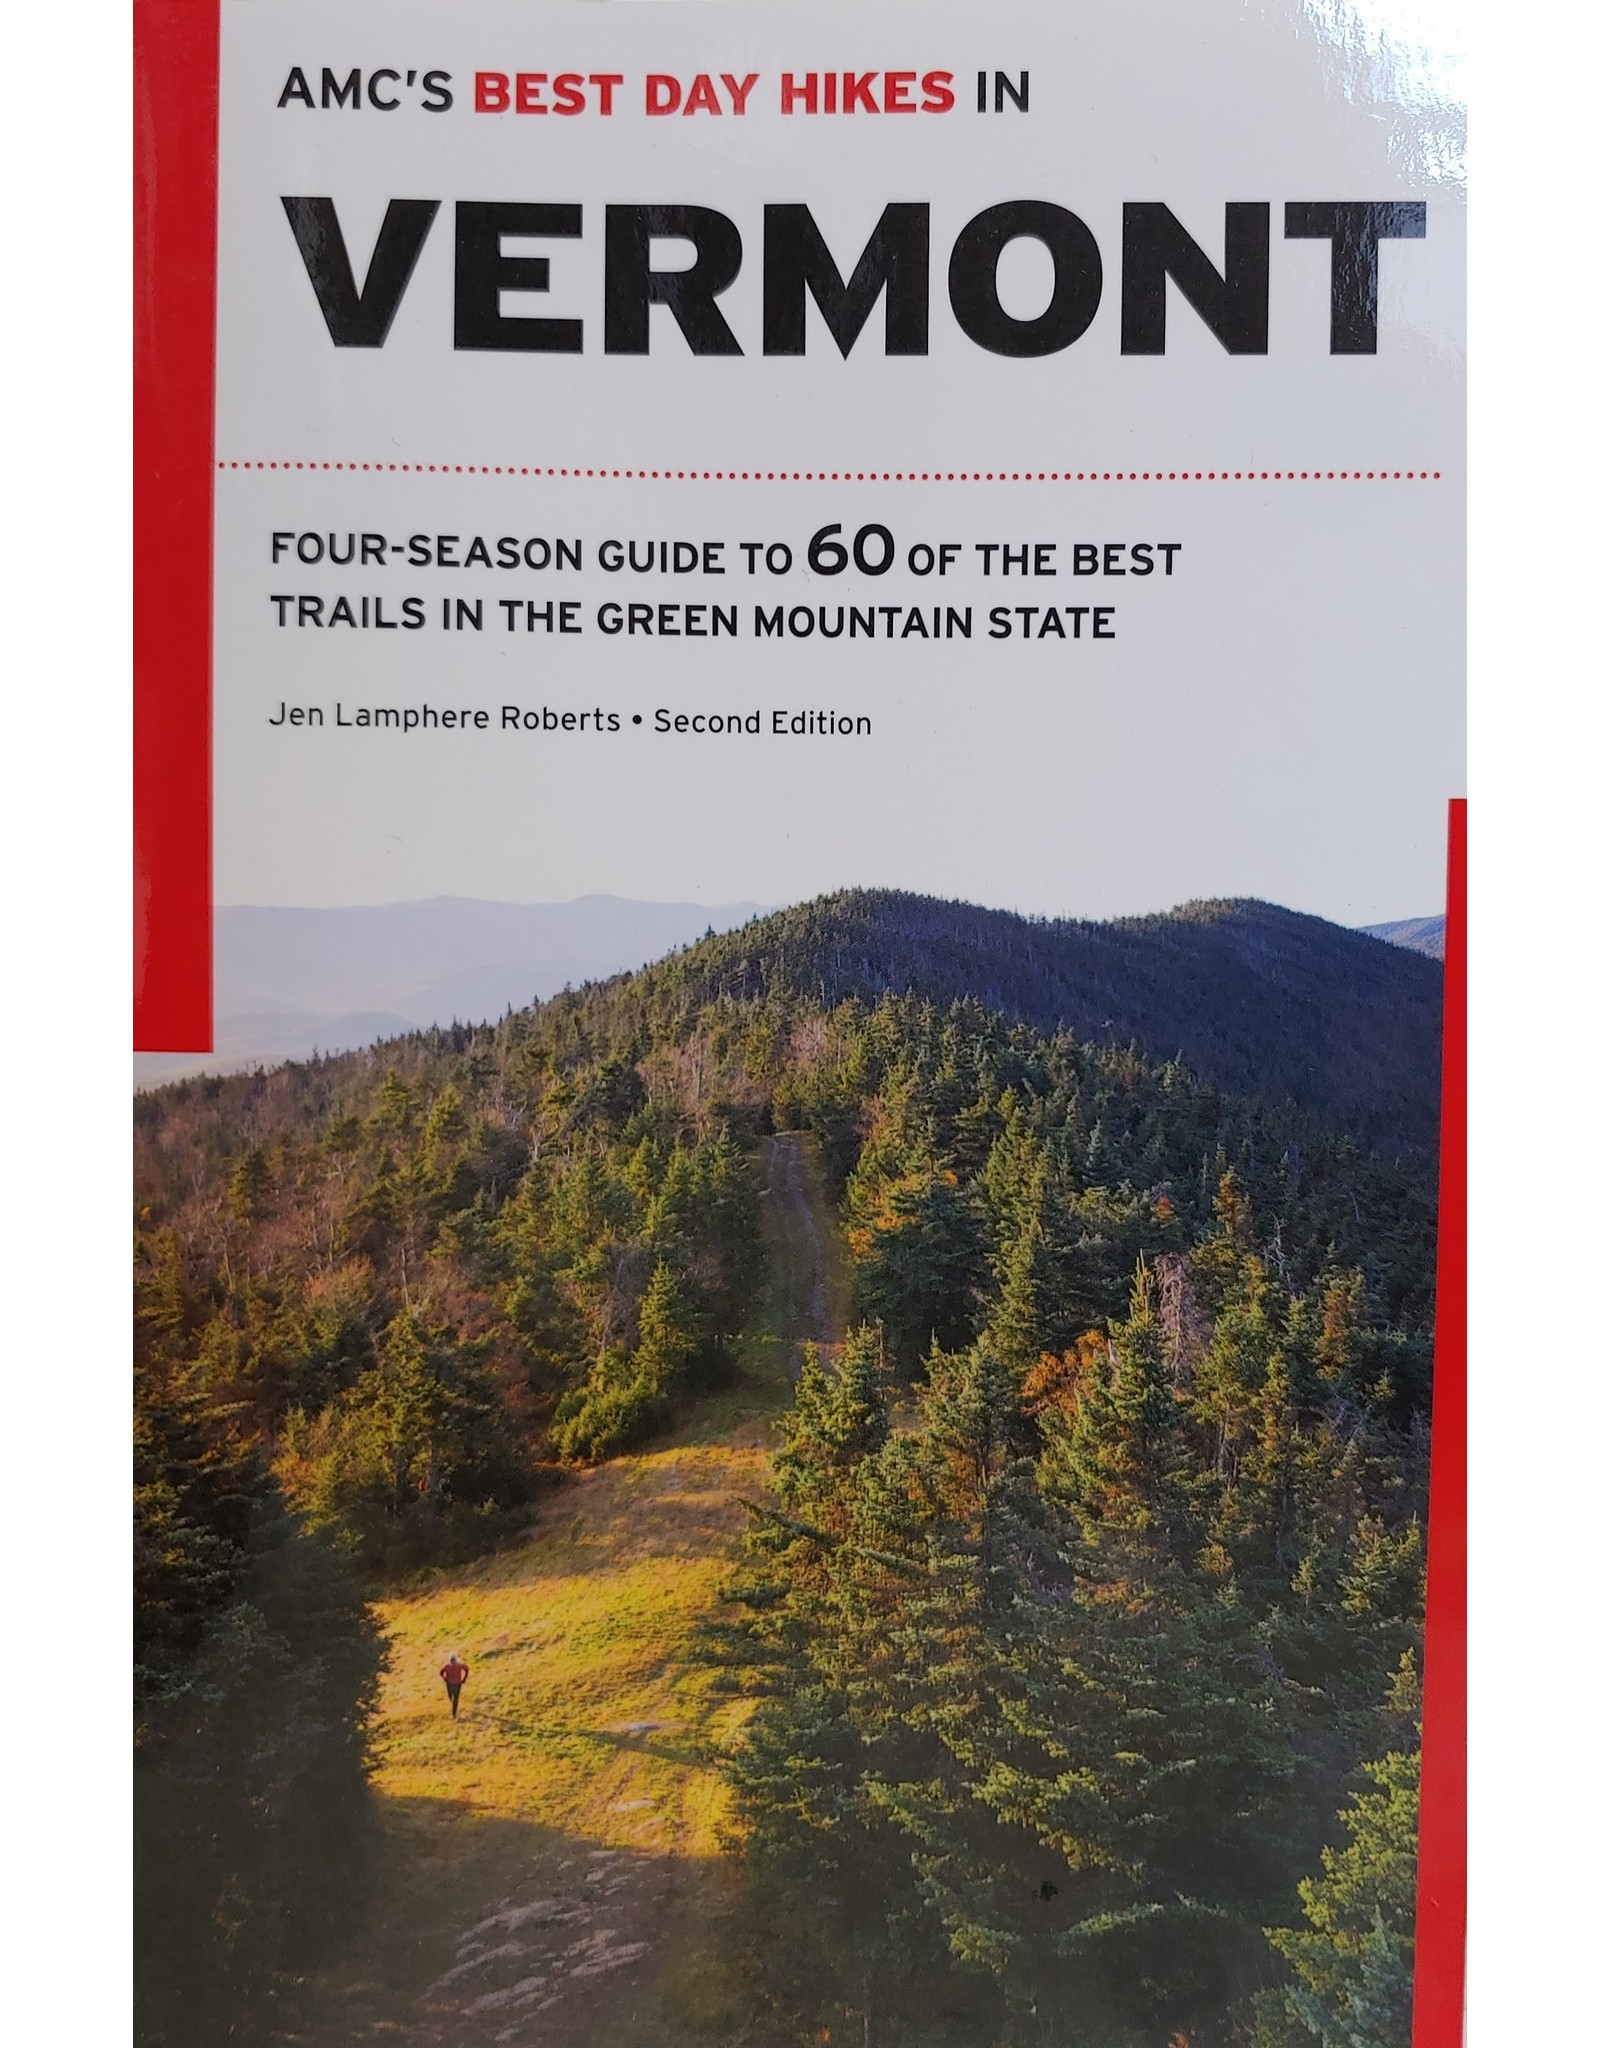 AMC's BEST DAY HIKES IN VERMONT 2nd Ed.